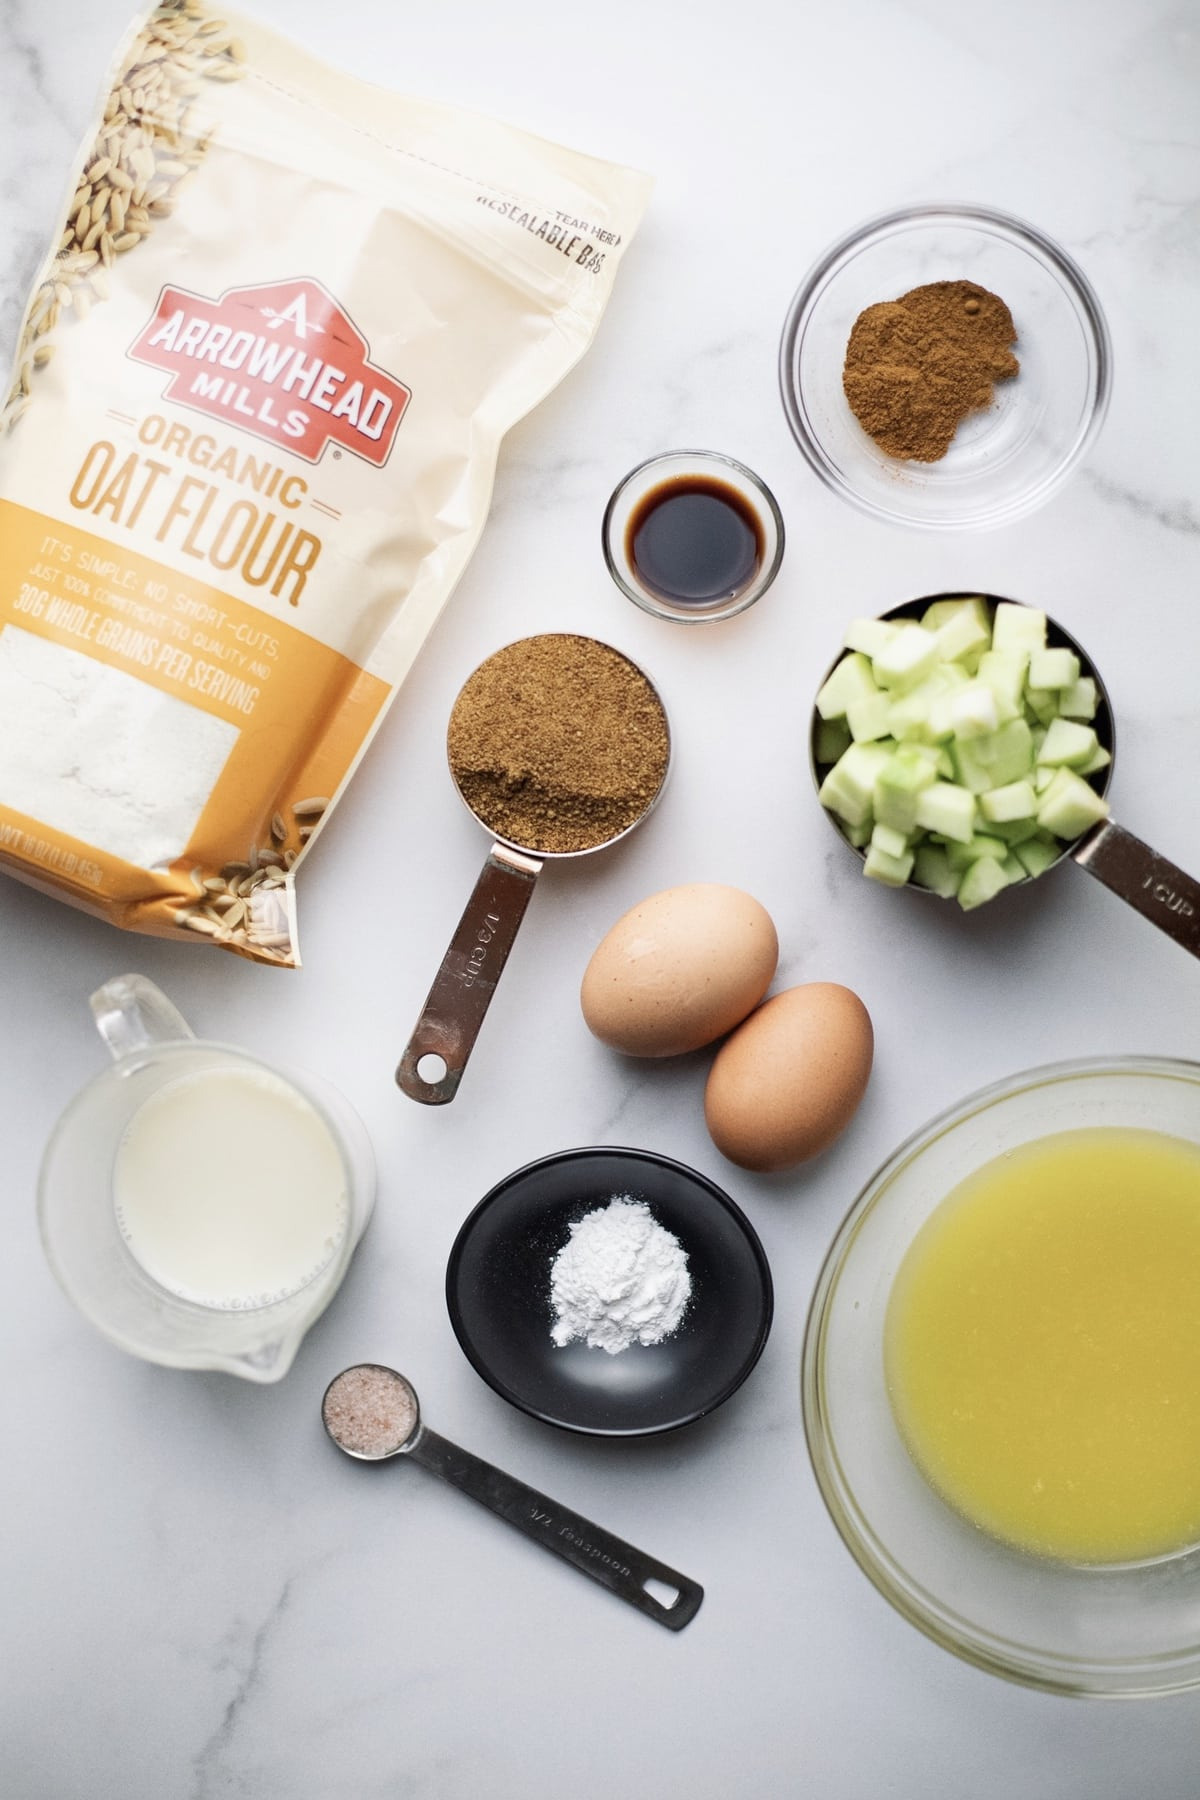 Ingredients for apple streusel bread arranged on top white counter.